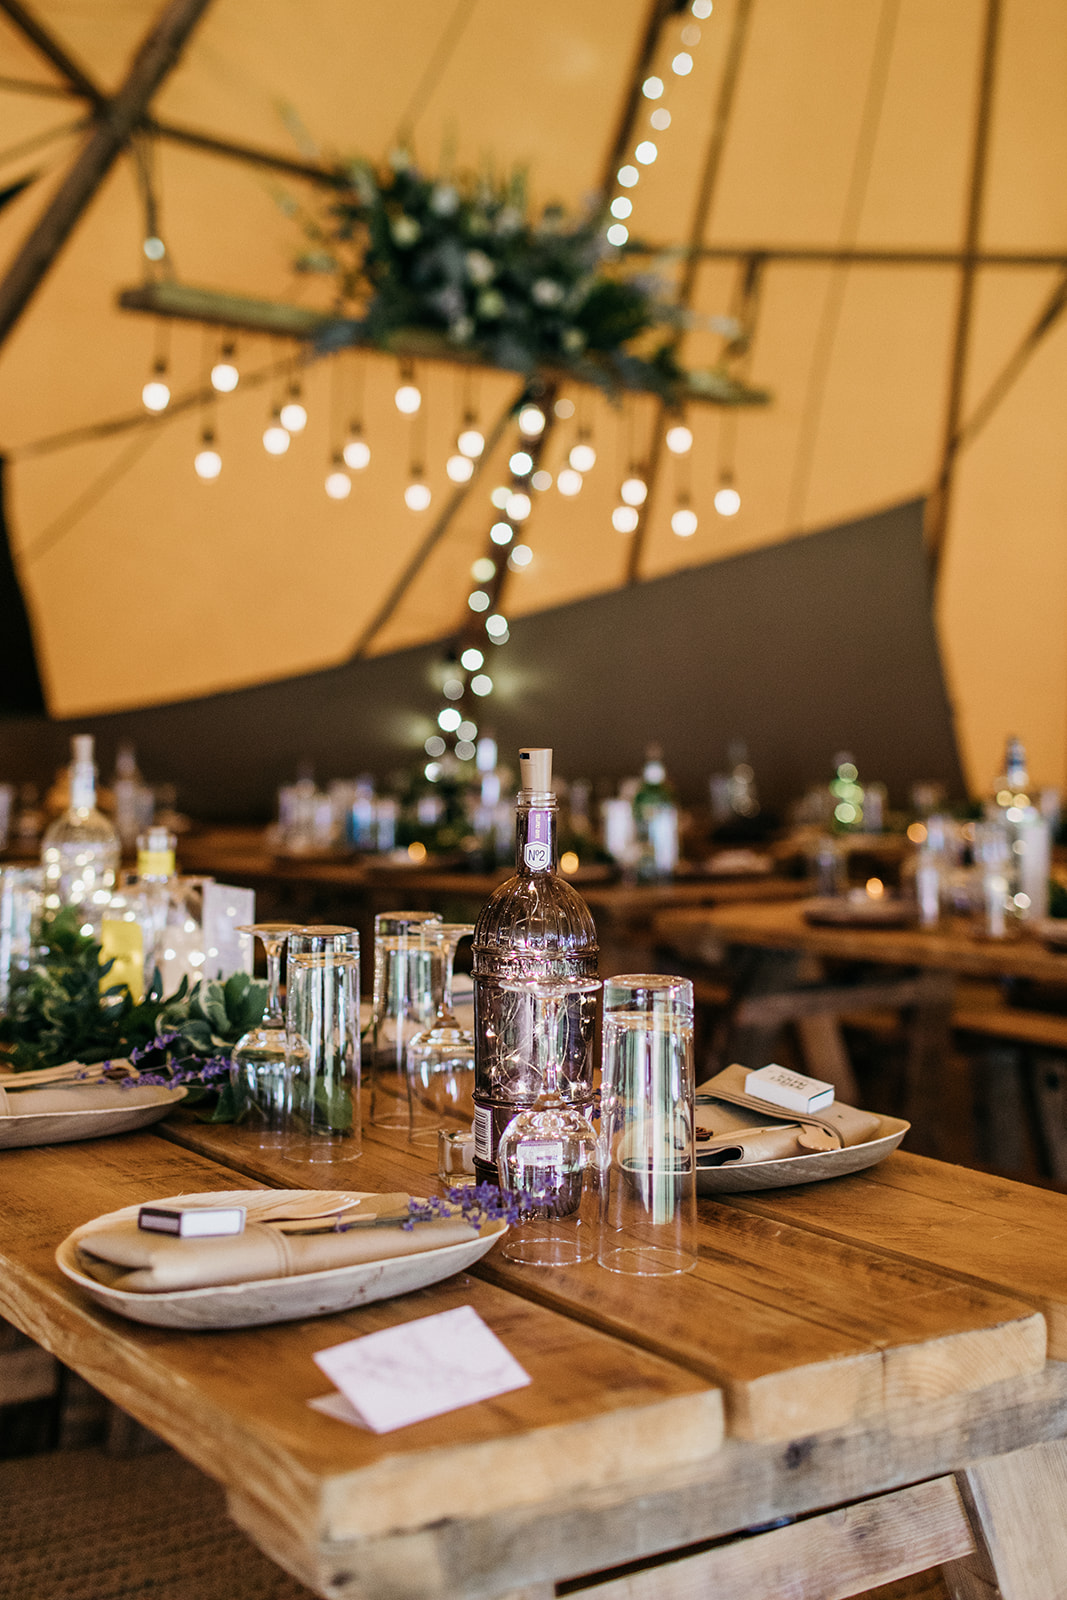 Table arrangement in wedding tipi